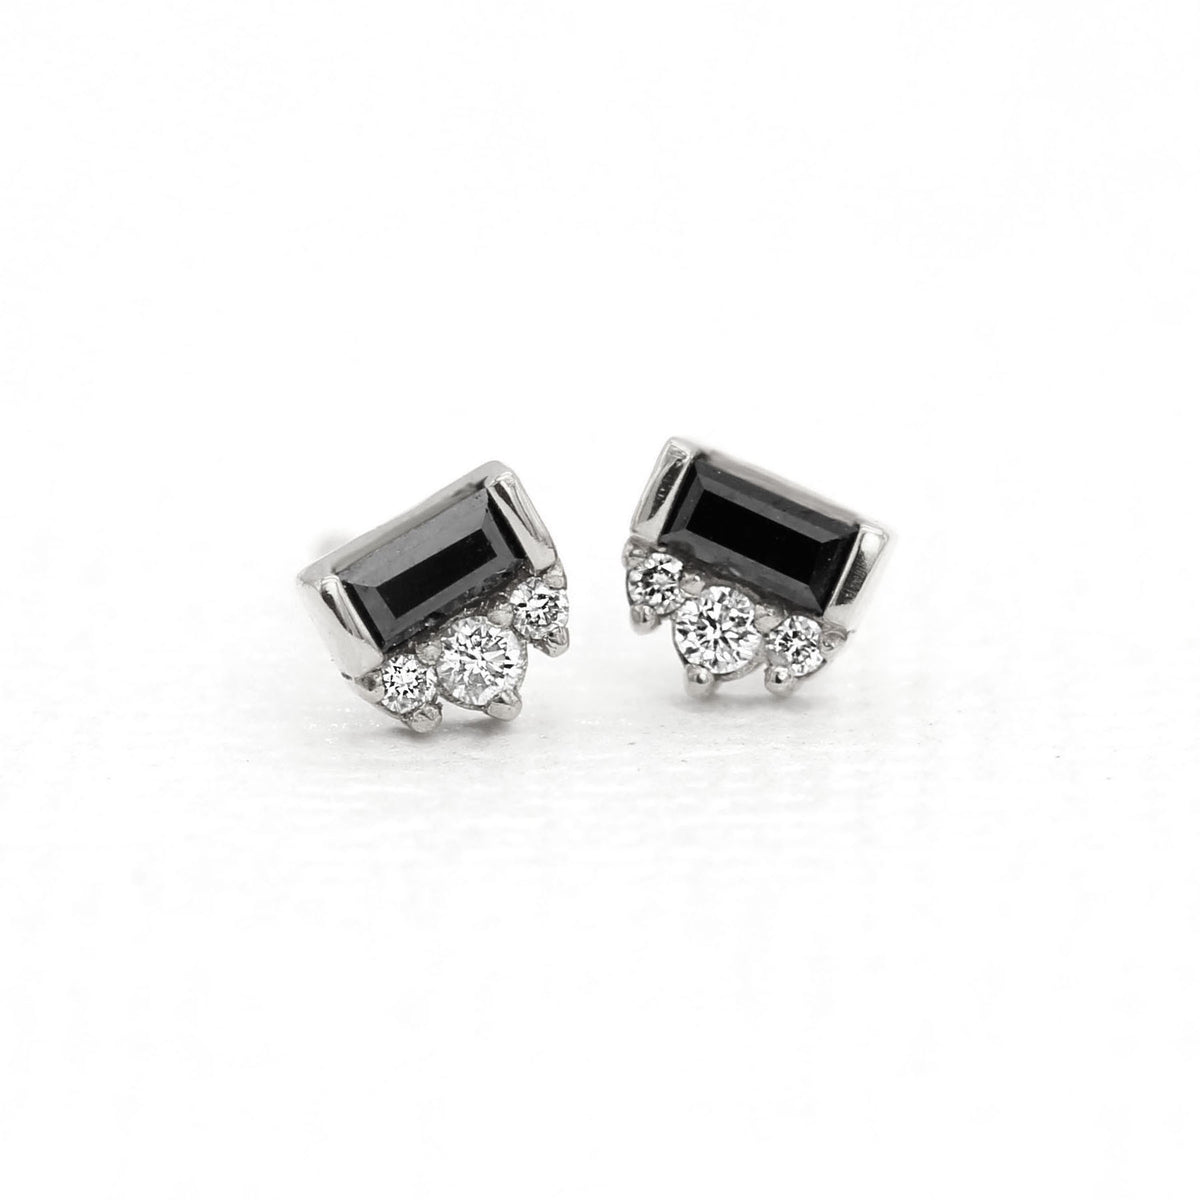 Black Tie Earrings - Baguette Black Diamond & White Diamonds - Palladium White Gold/Platinum